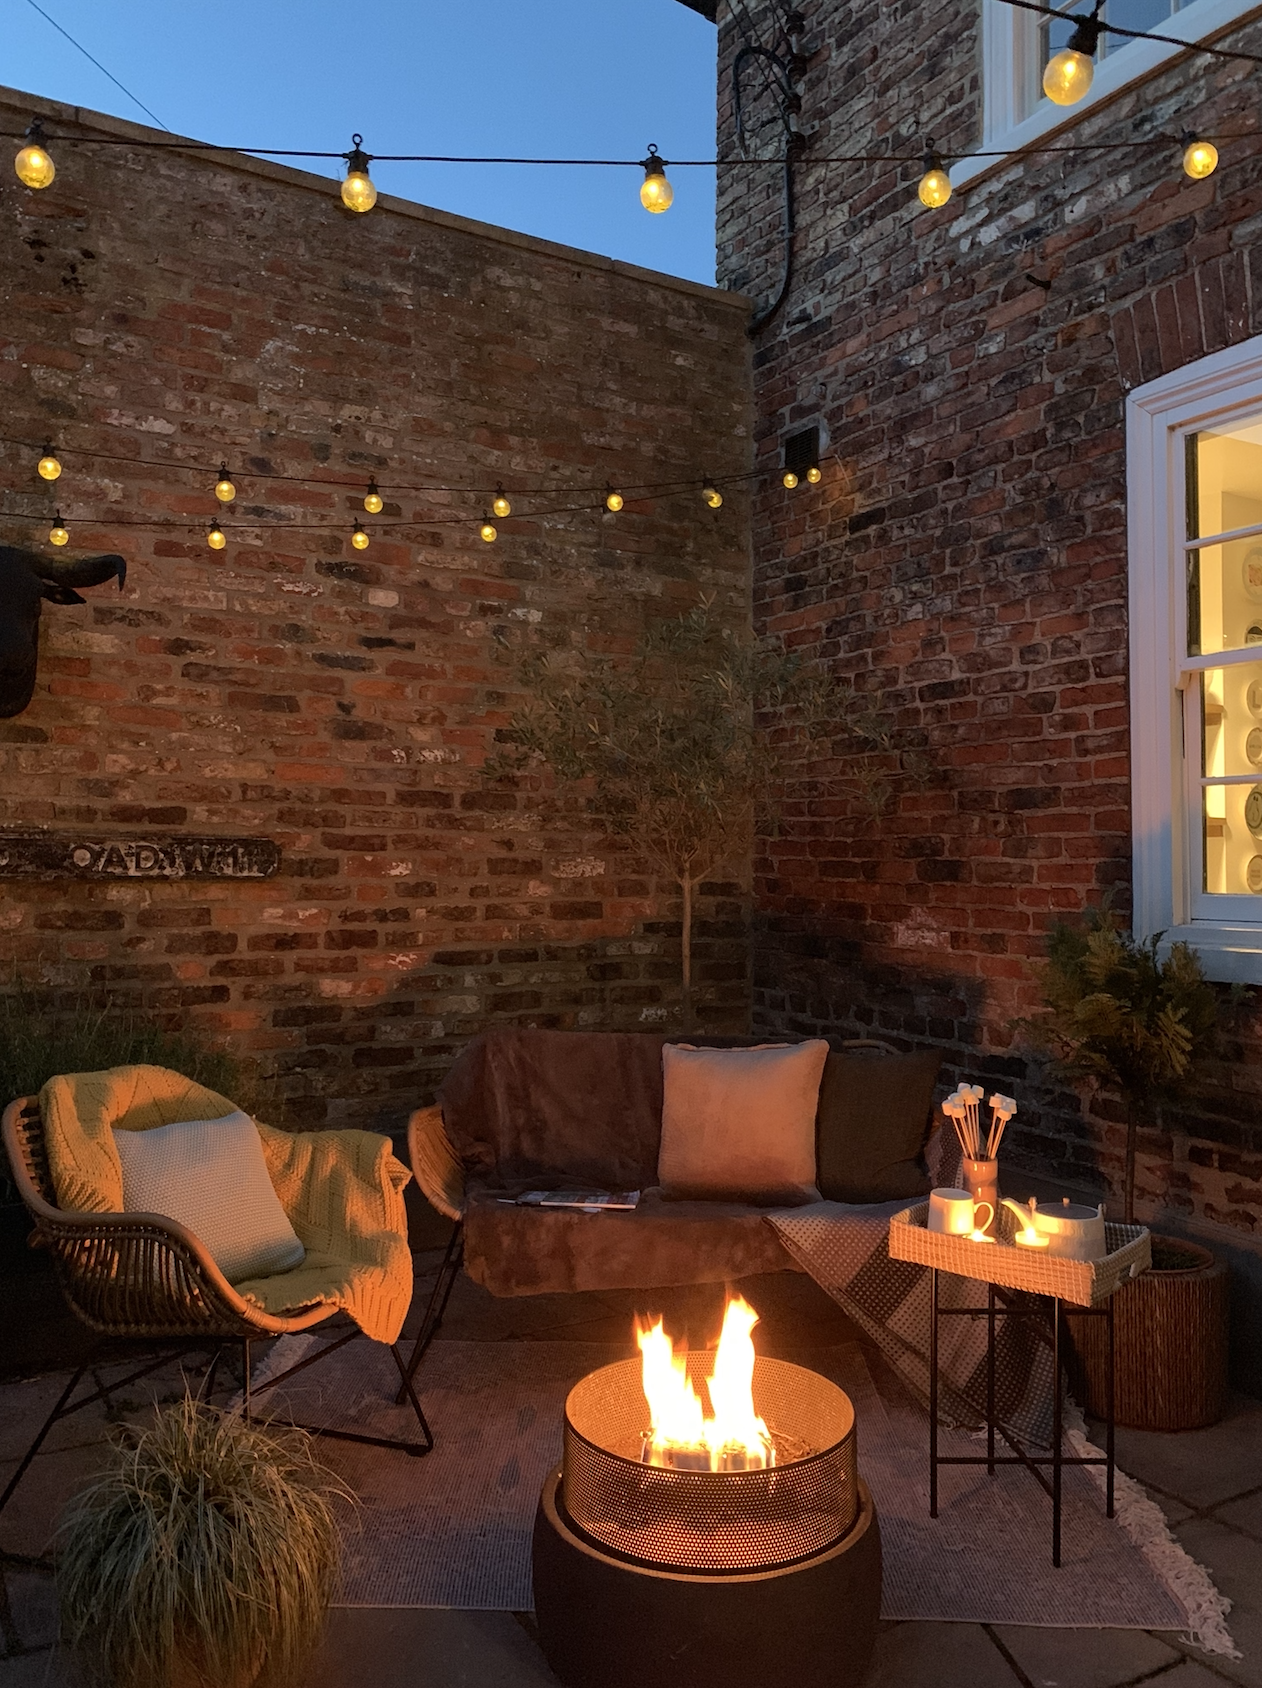 It's perfectly feasible to transform our outdoor spaces, whatever size they may be, into sociable areas ready for autumn #autumn #garden #firepit #realhomes